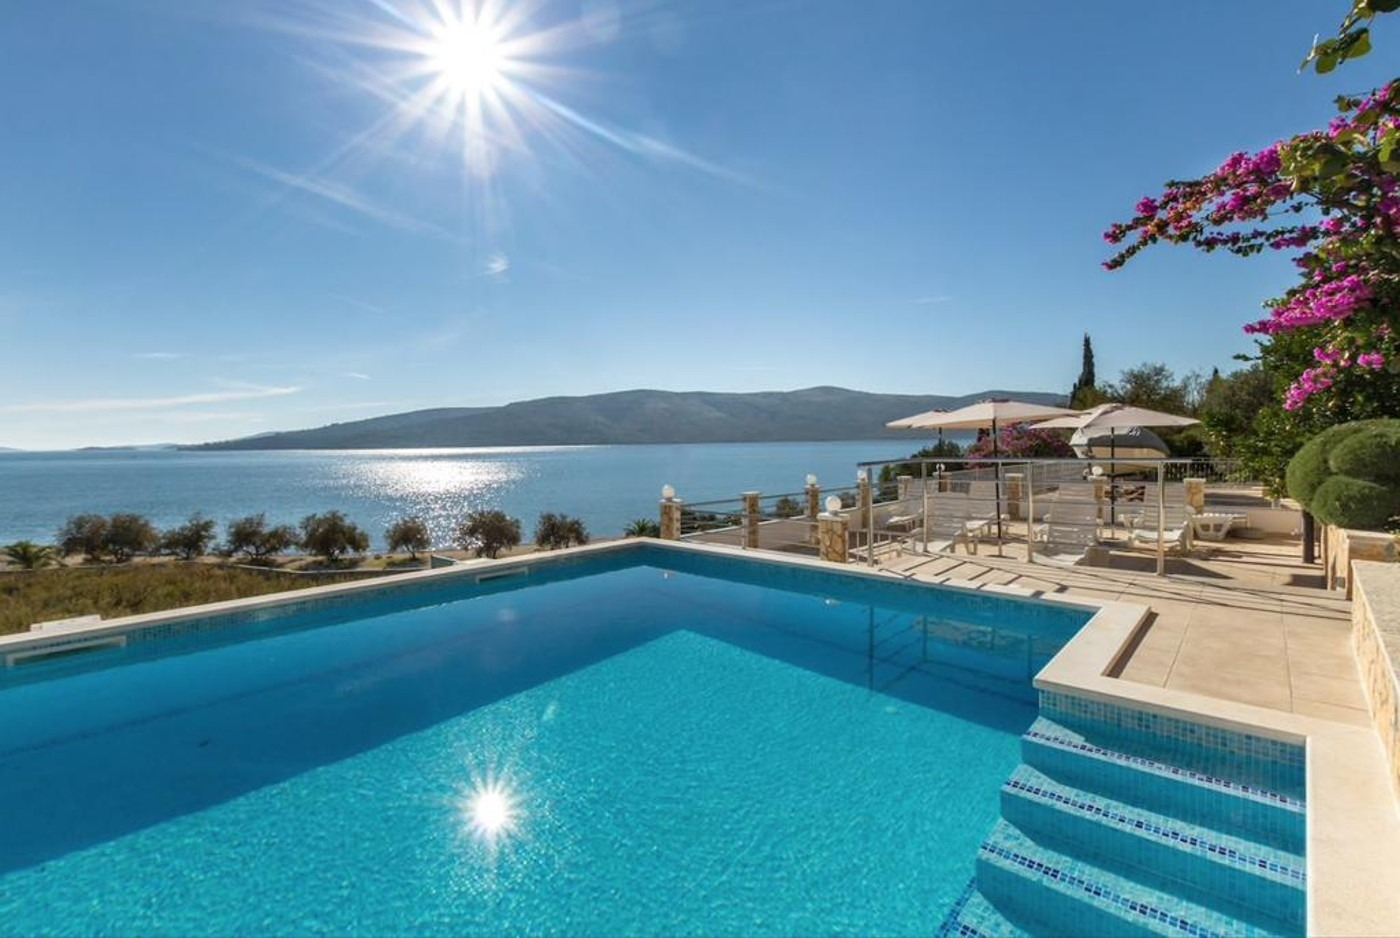 Apartmani, Seget Vranjica, Trogir i okolica - Apartmani   Rose - 30 m from the beach: